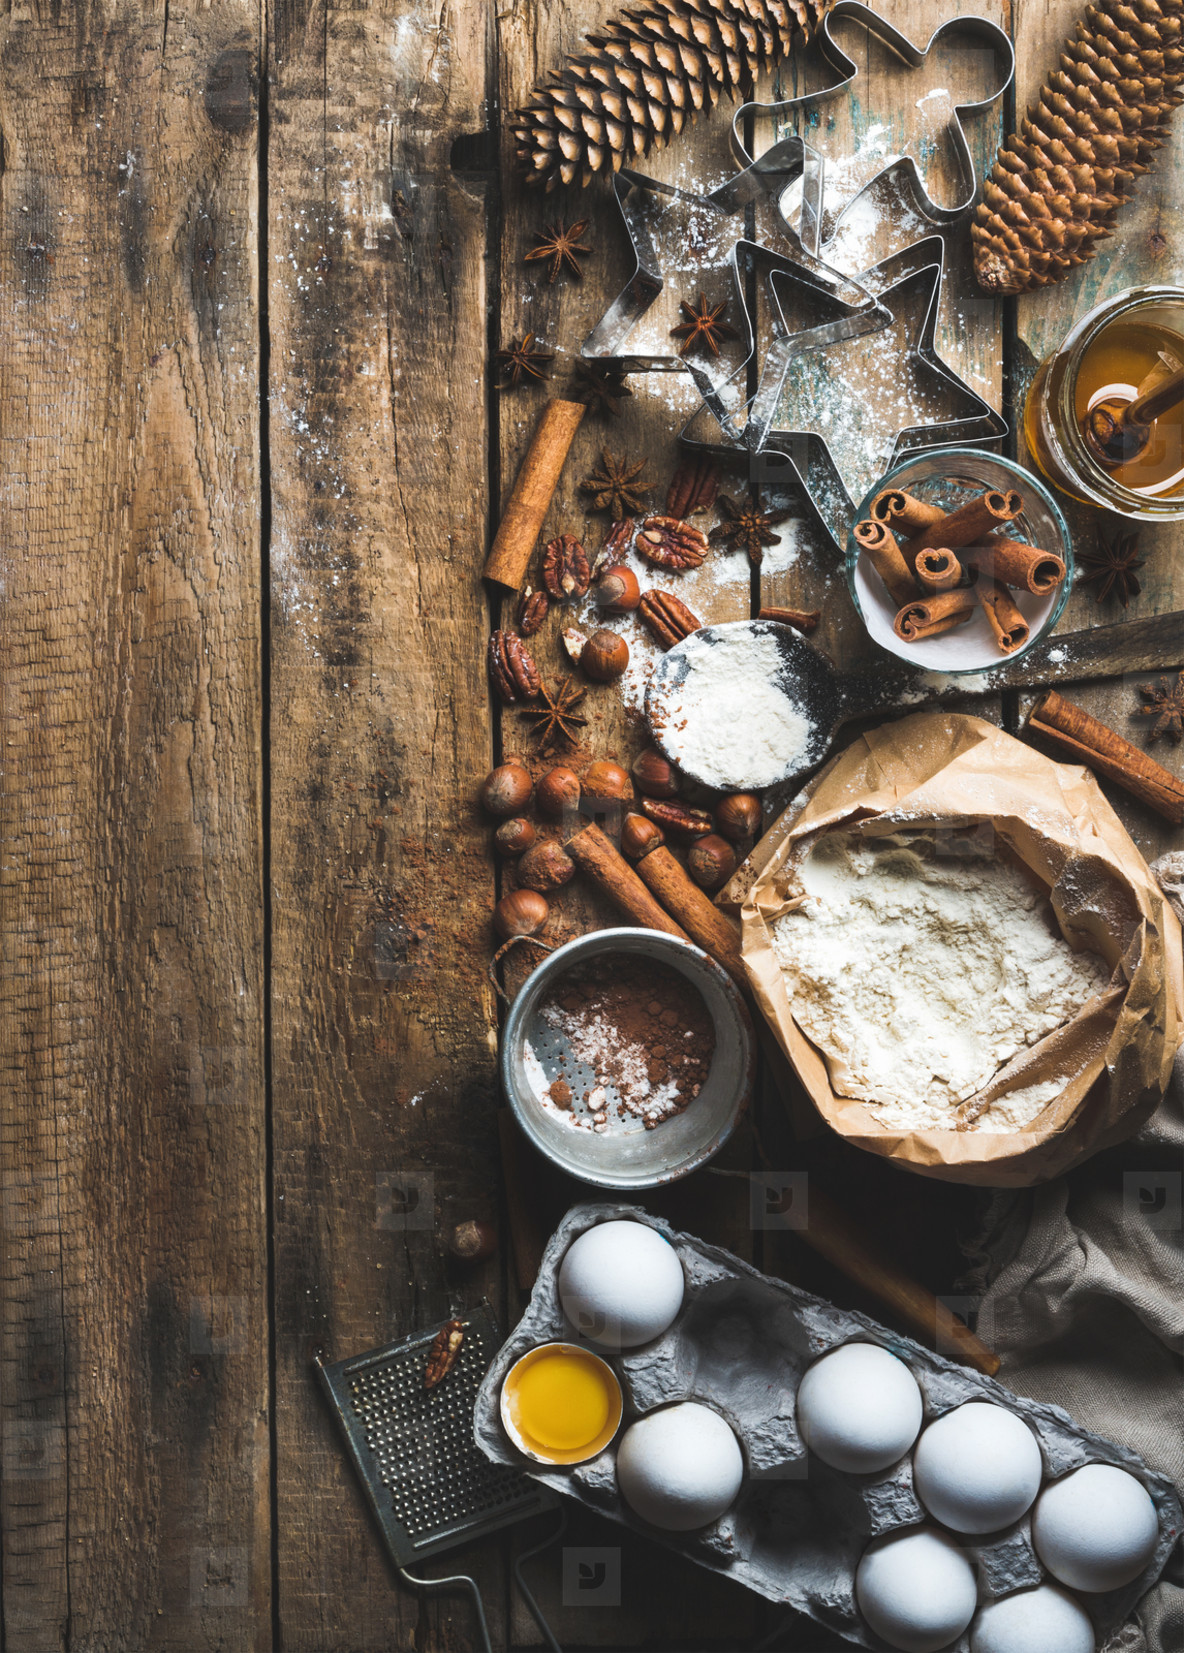 Christmas holiday cooking and baking ingredients on rustic wooden background